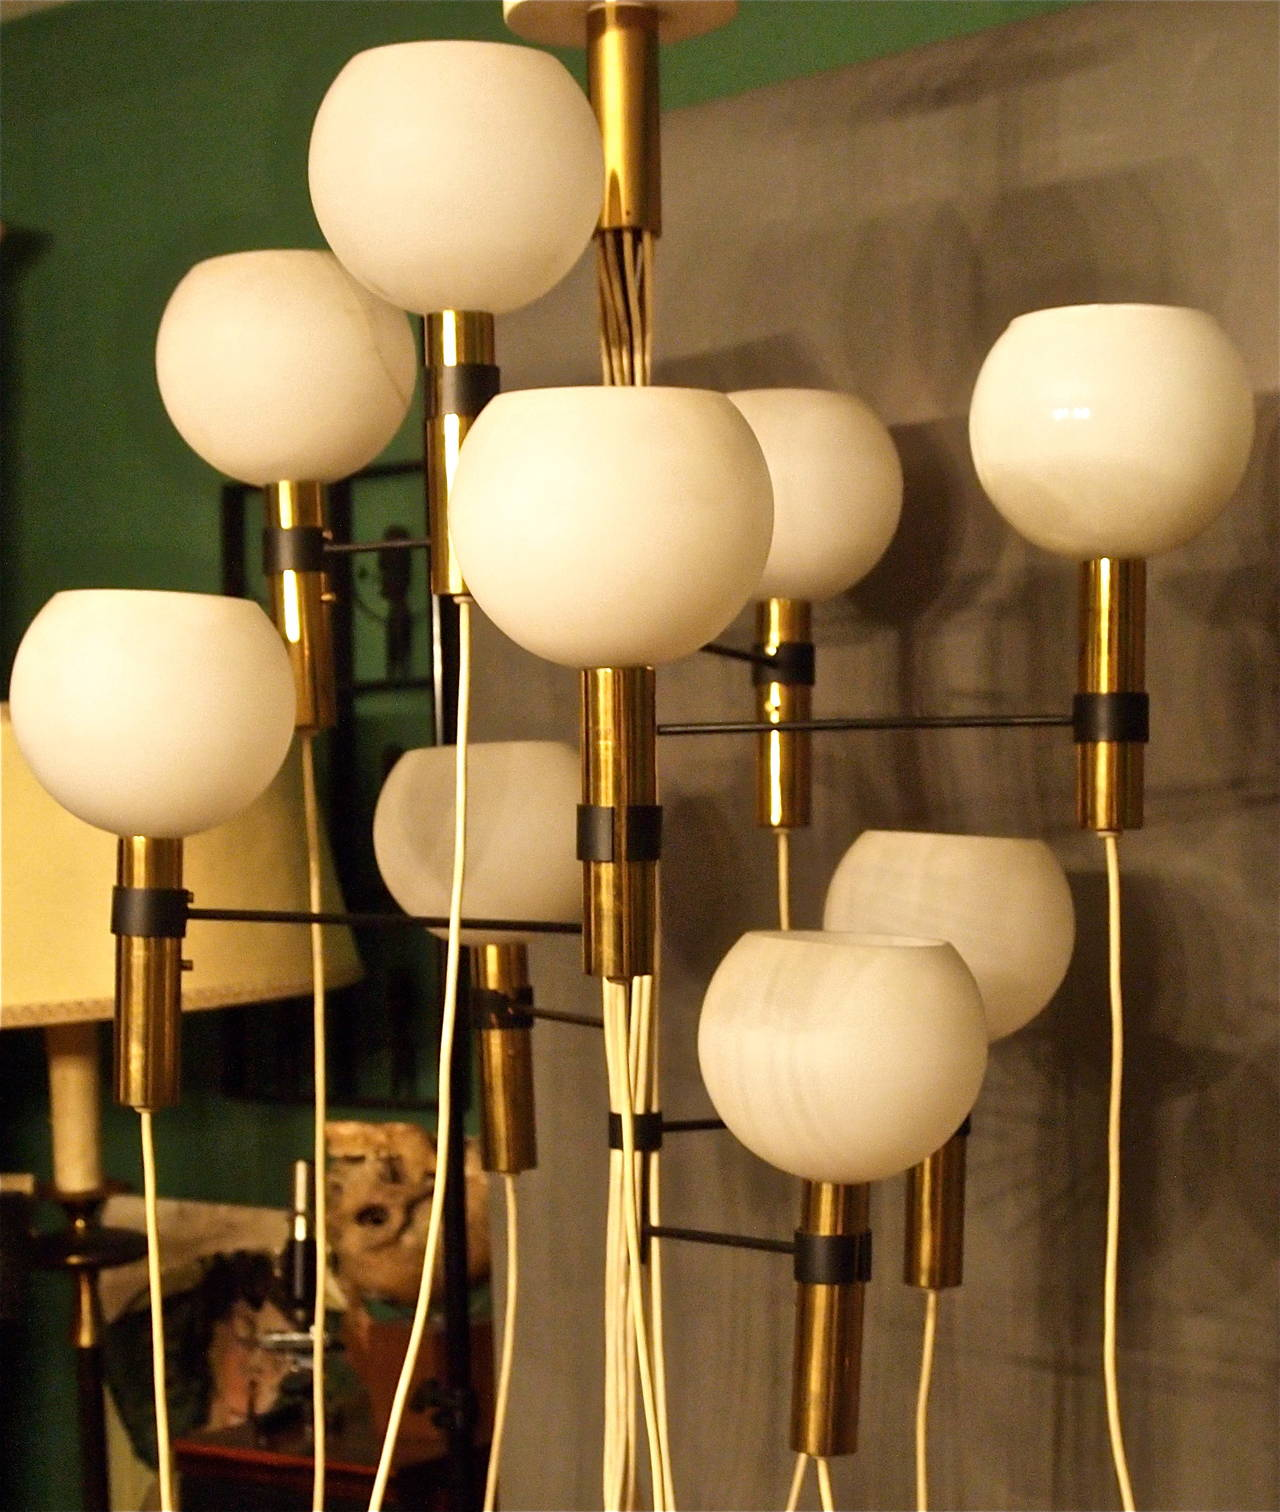 Chandelier Attributed to Gino Sarfatti, 1950s-1960s In Excellent Condition For Sale In Saint-Ouen, FR